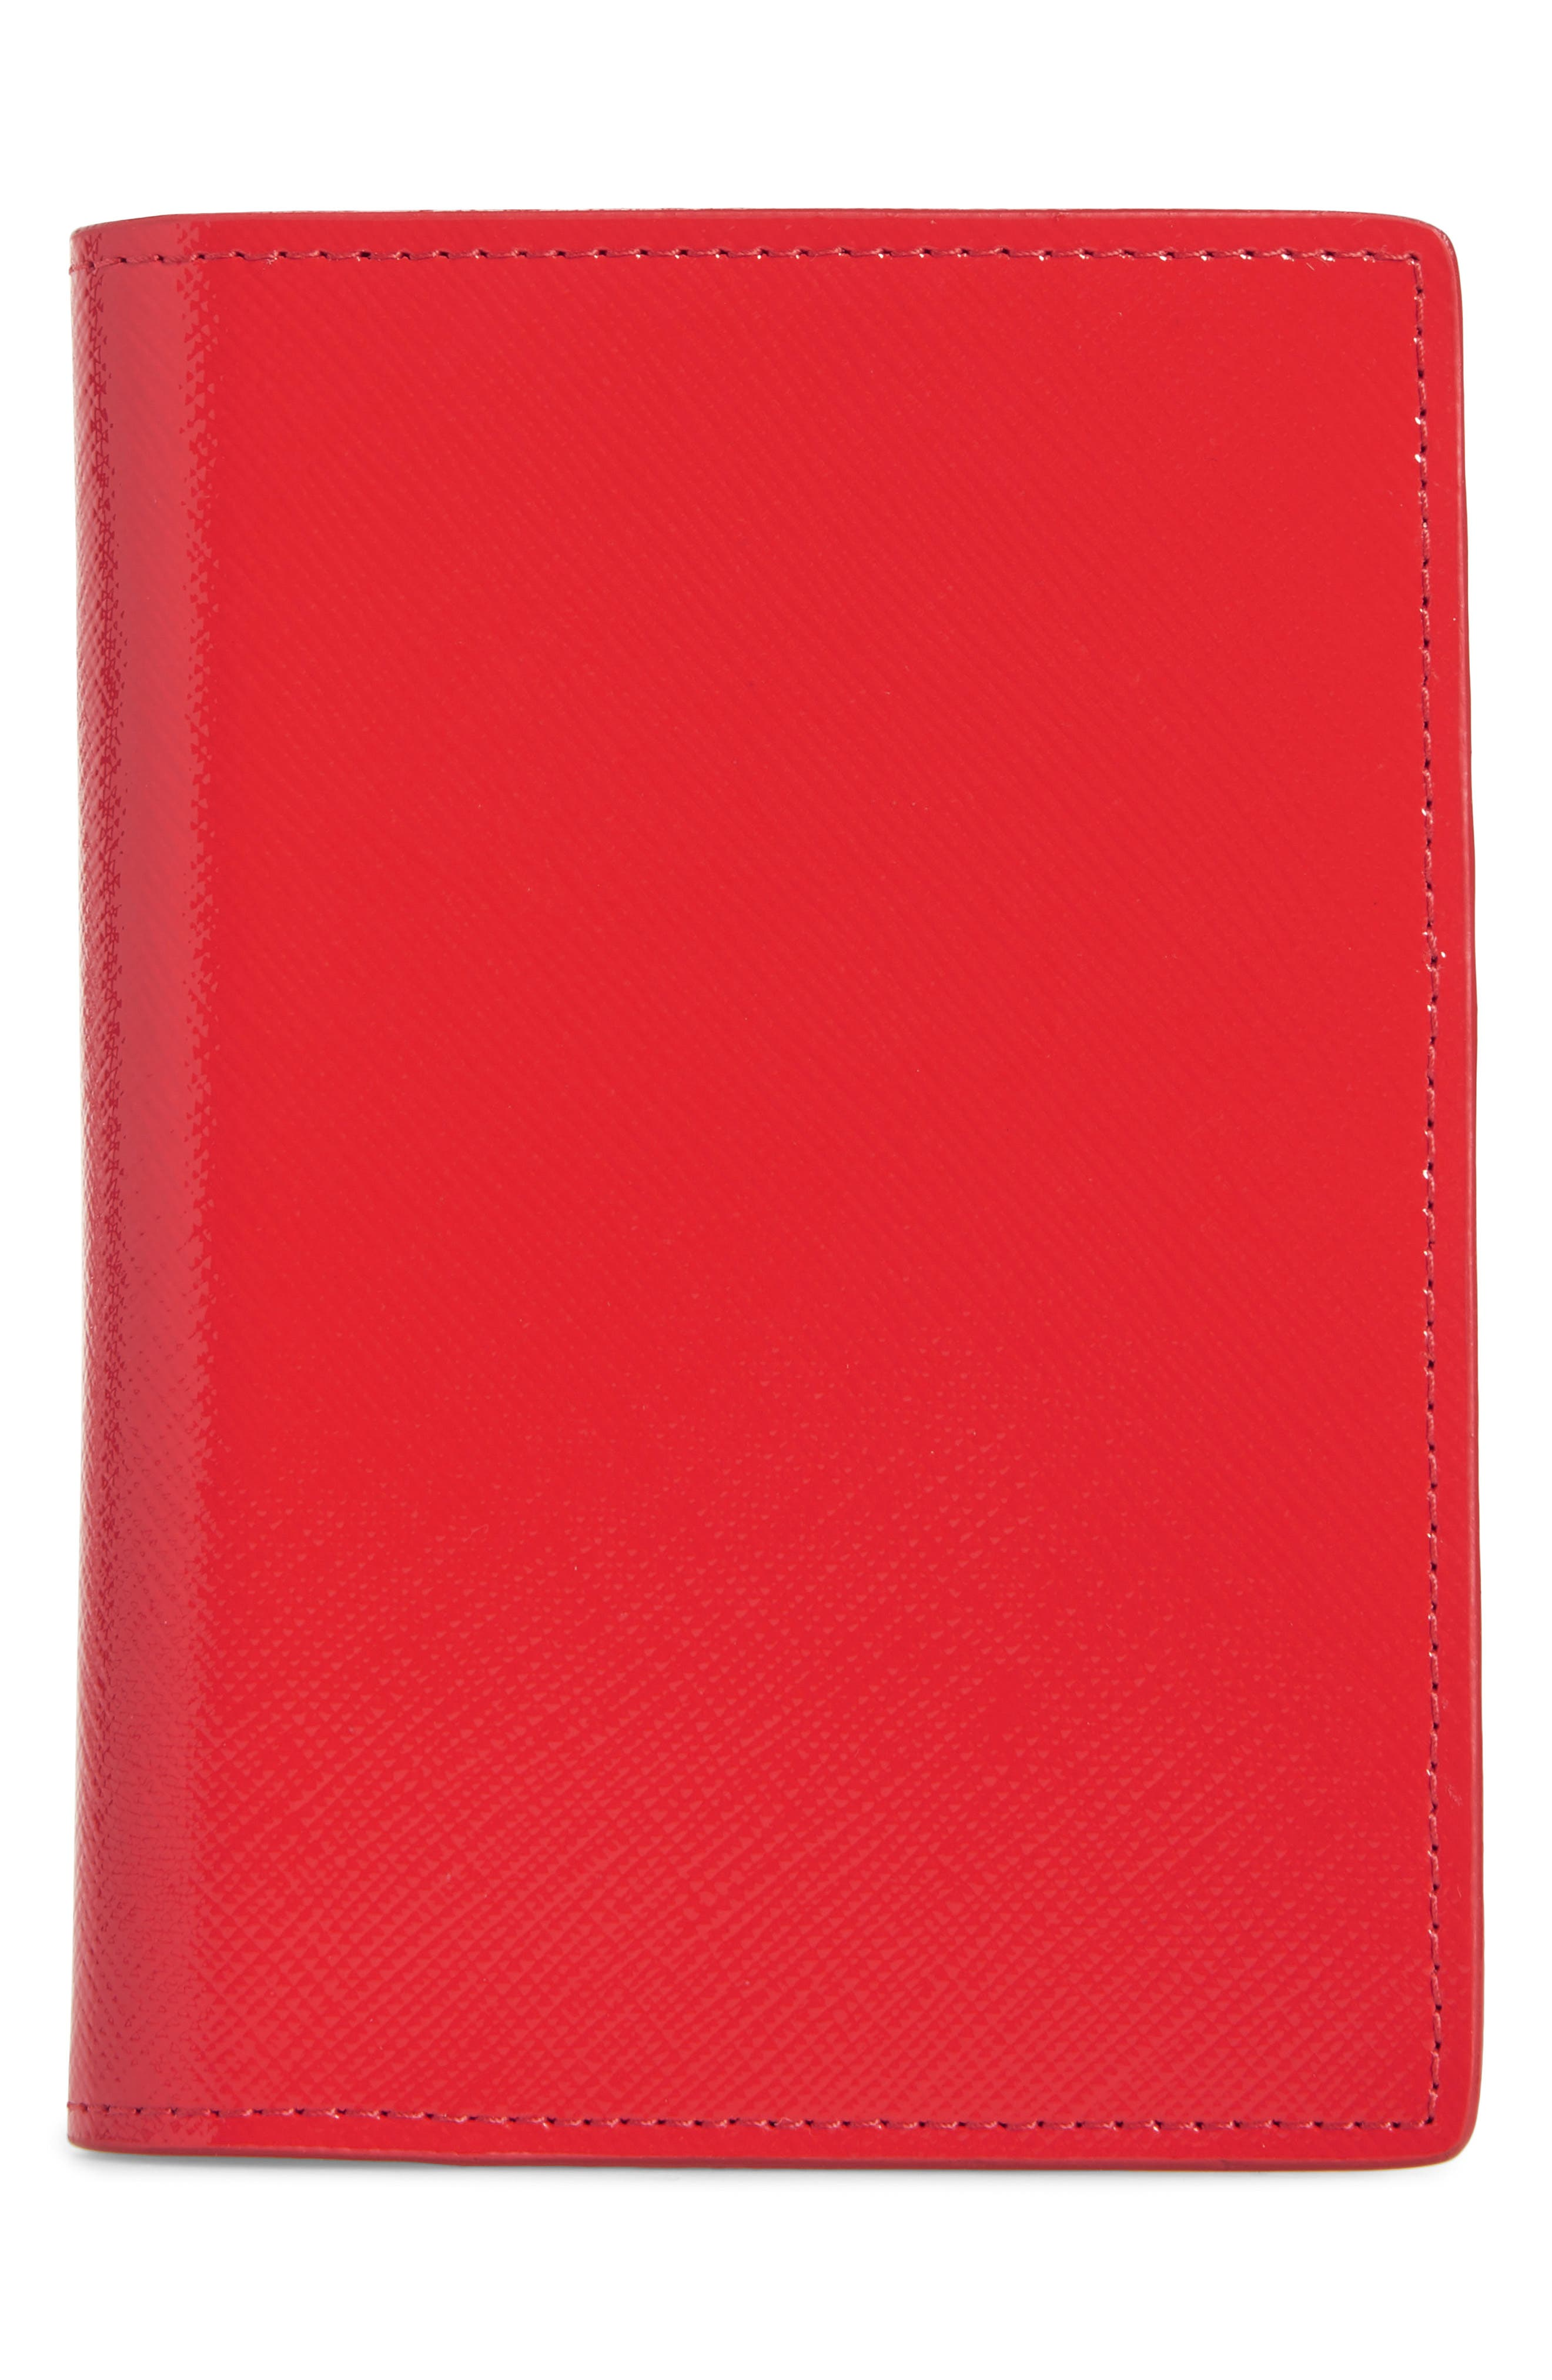 Alternate Image 1 Selected - Nordstrom Leather Passport Case